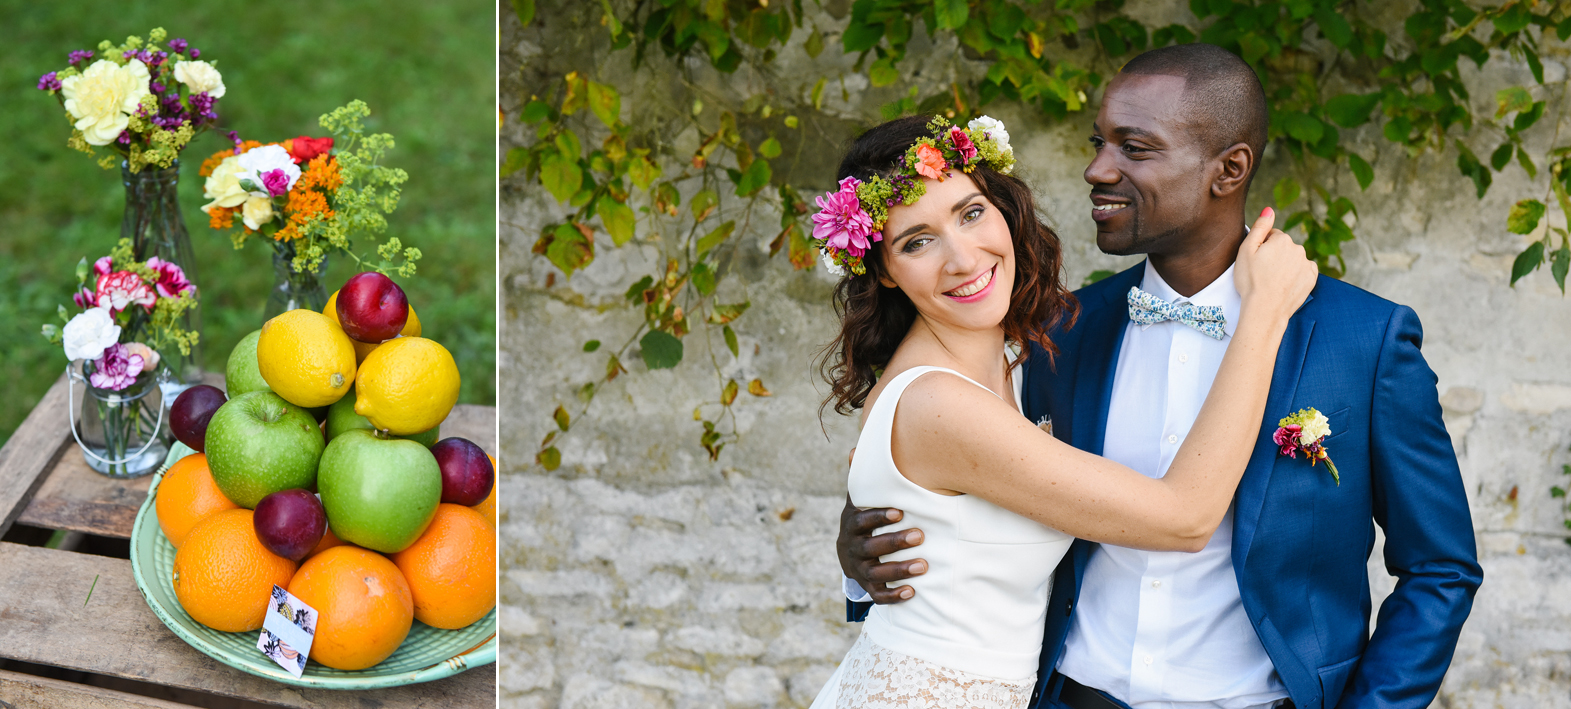 shooting_inspiration_mariage_peps_wedding_95_photographe_clemence_dubois-mep15